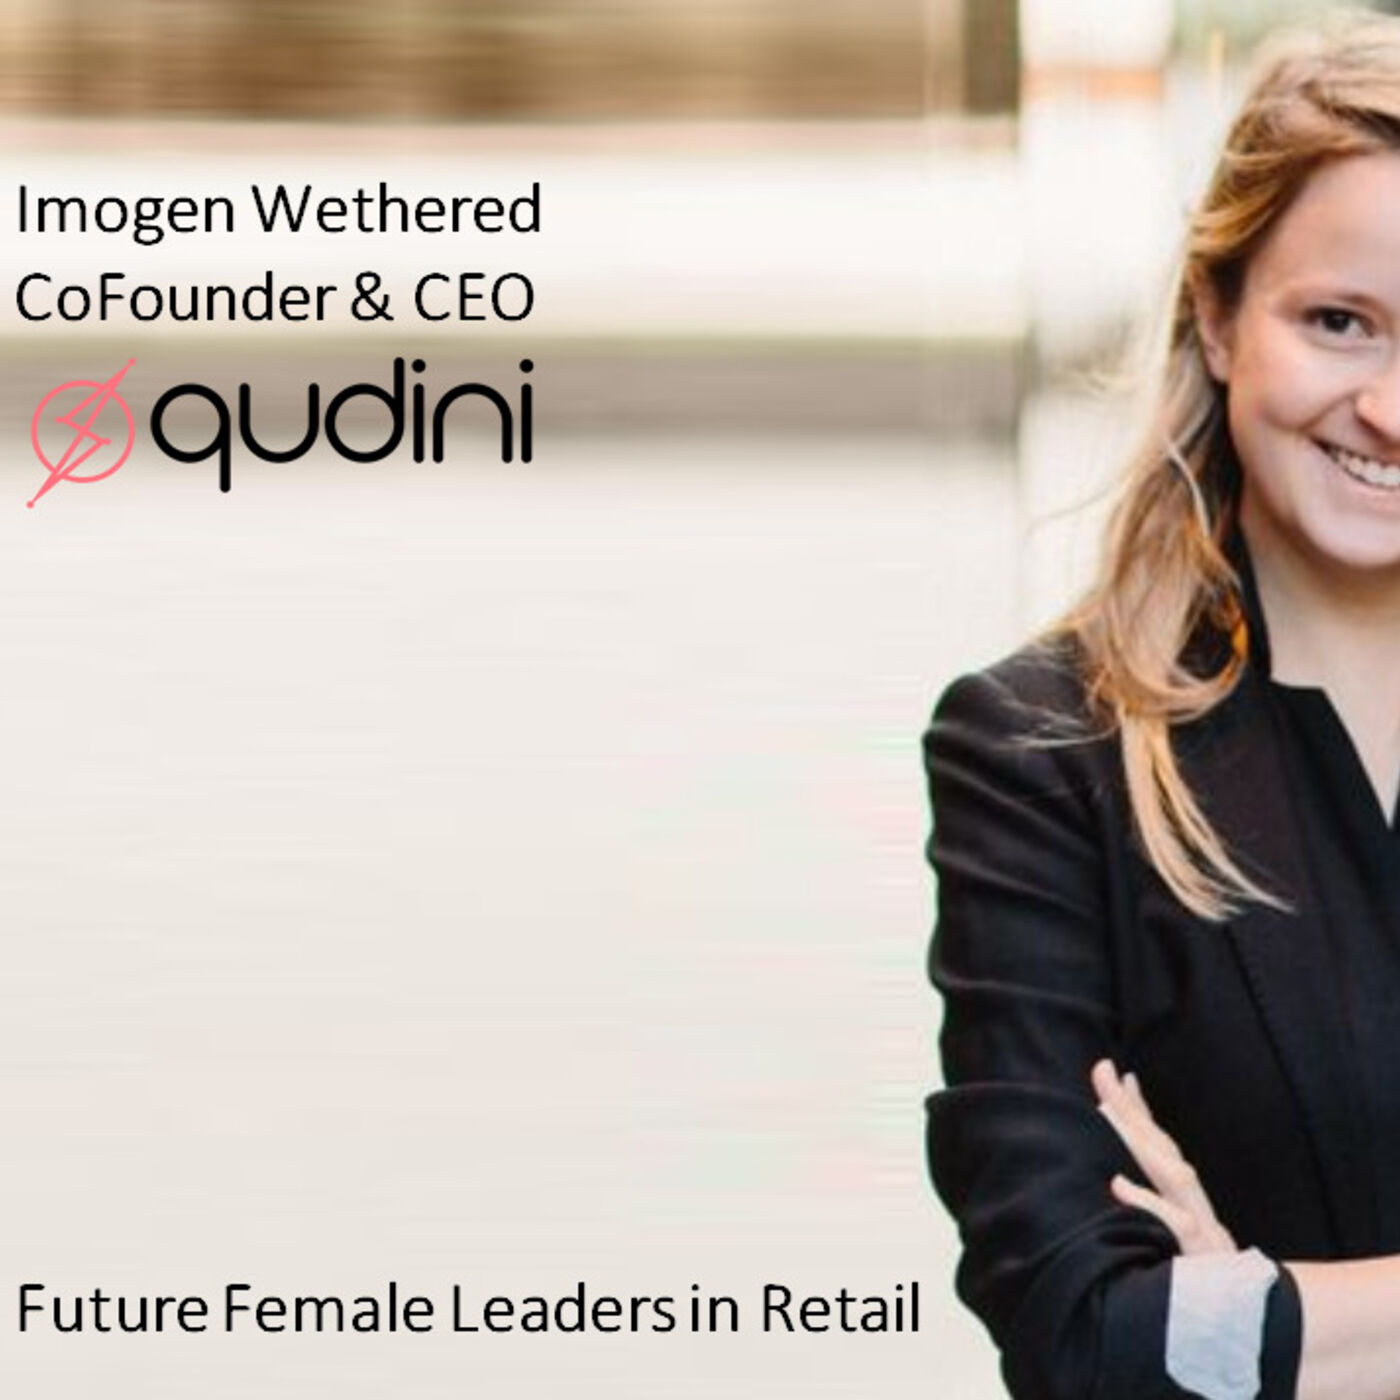 Retail Choreography Imogen Wethered Co Founder & CEO Qudini